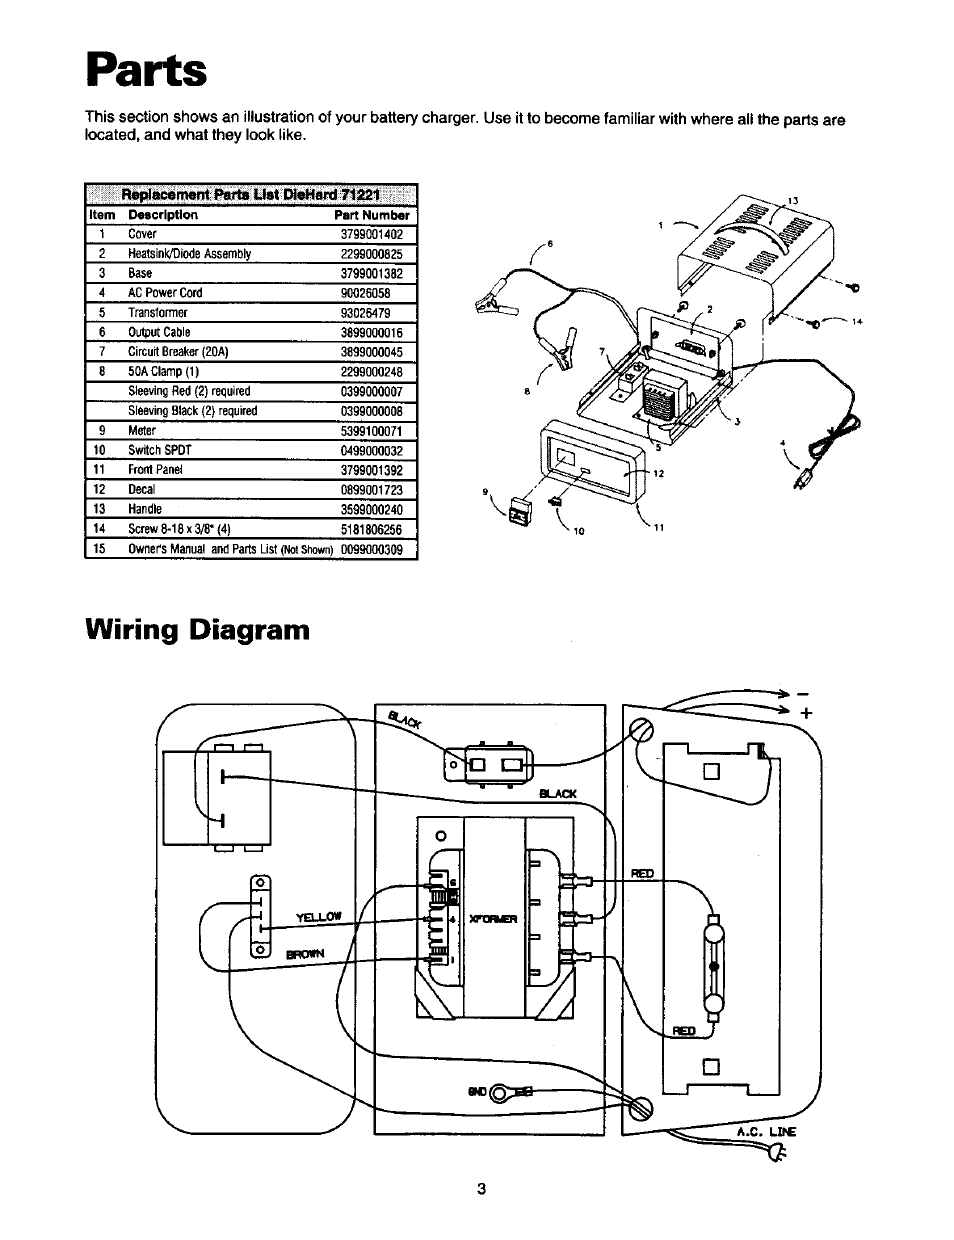 Wiring Diagram Battery Charger - Wiring Diagram